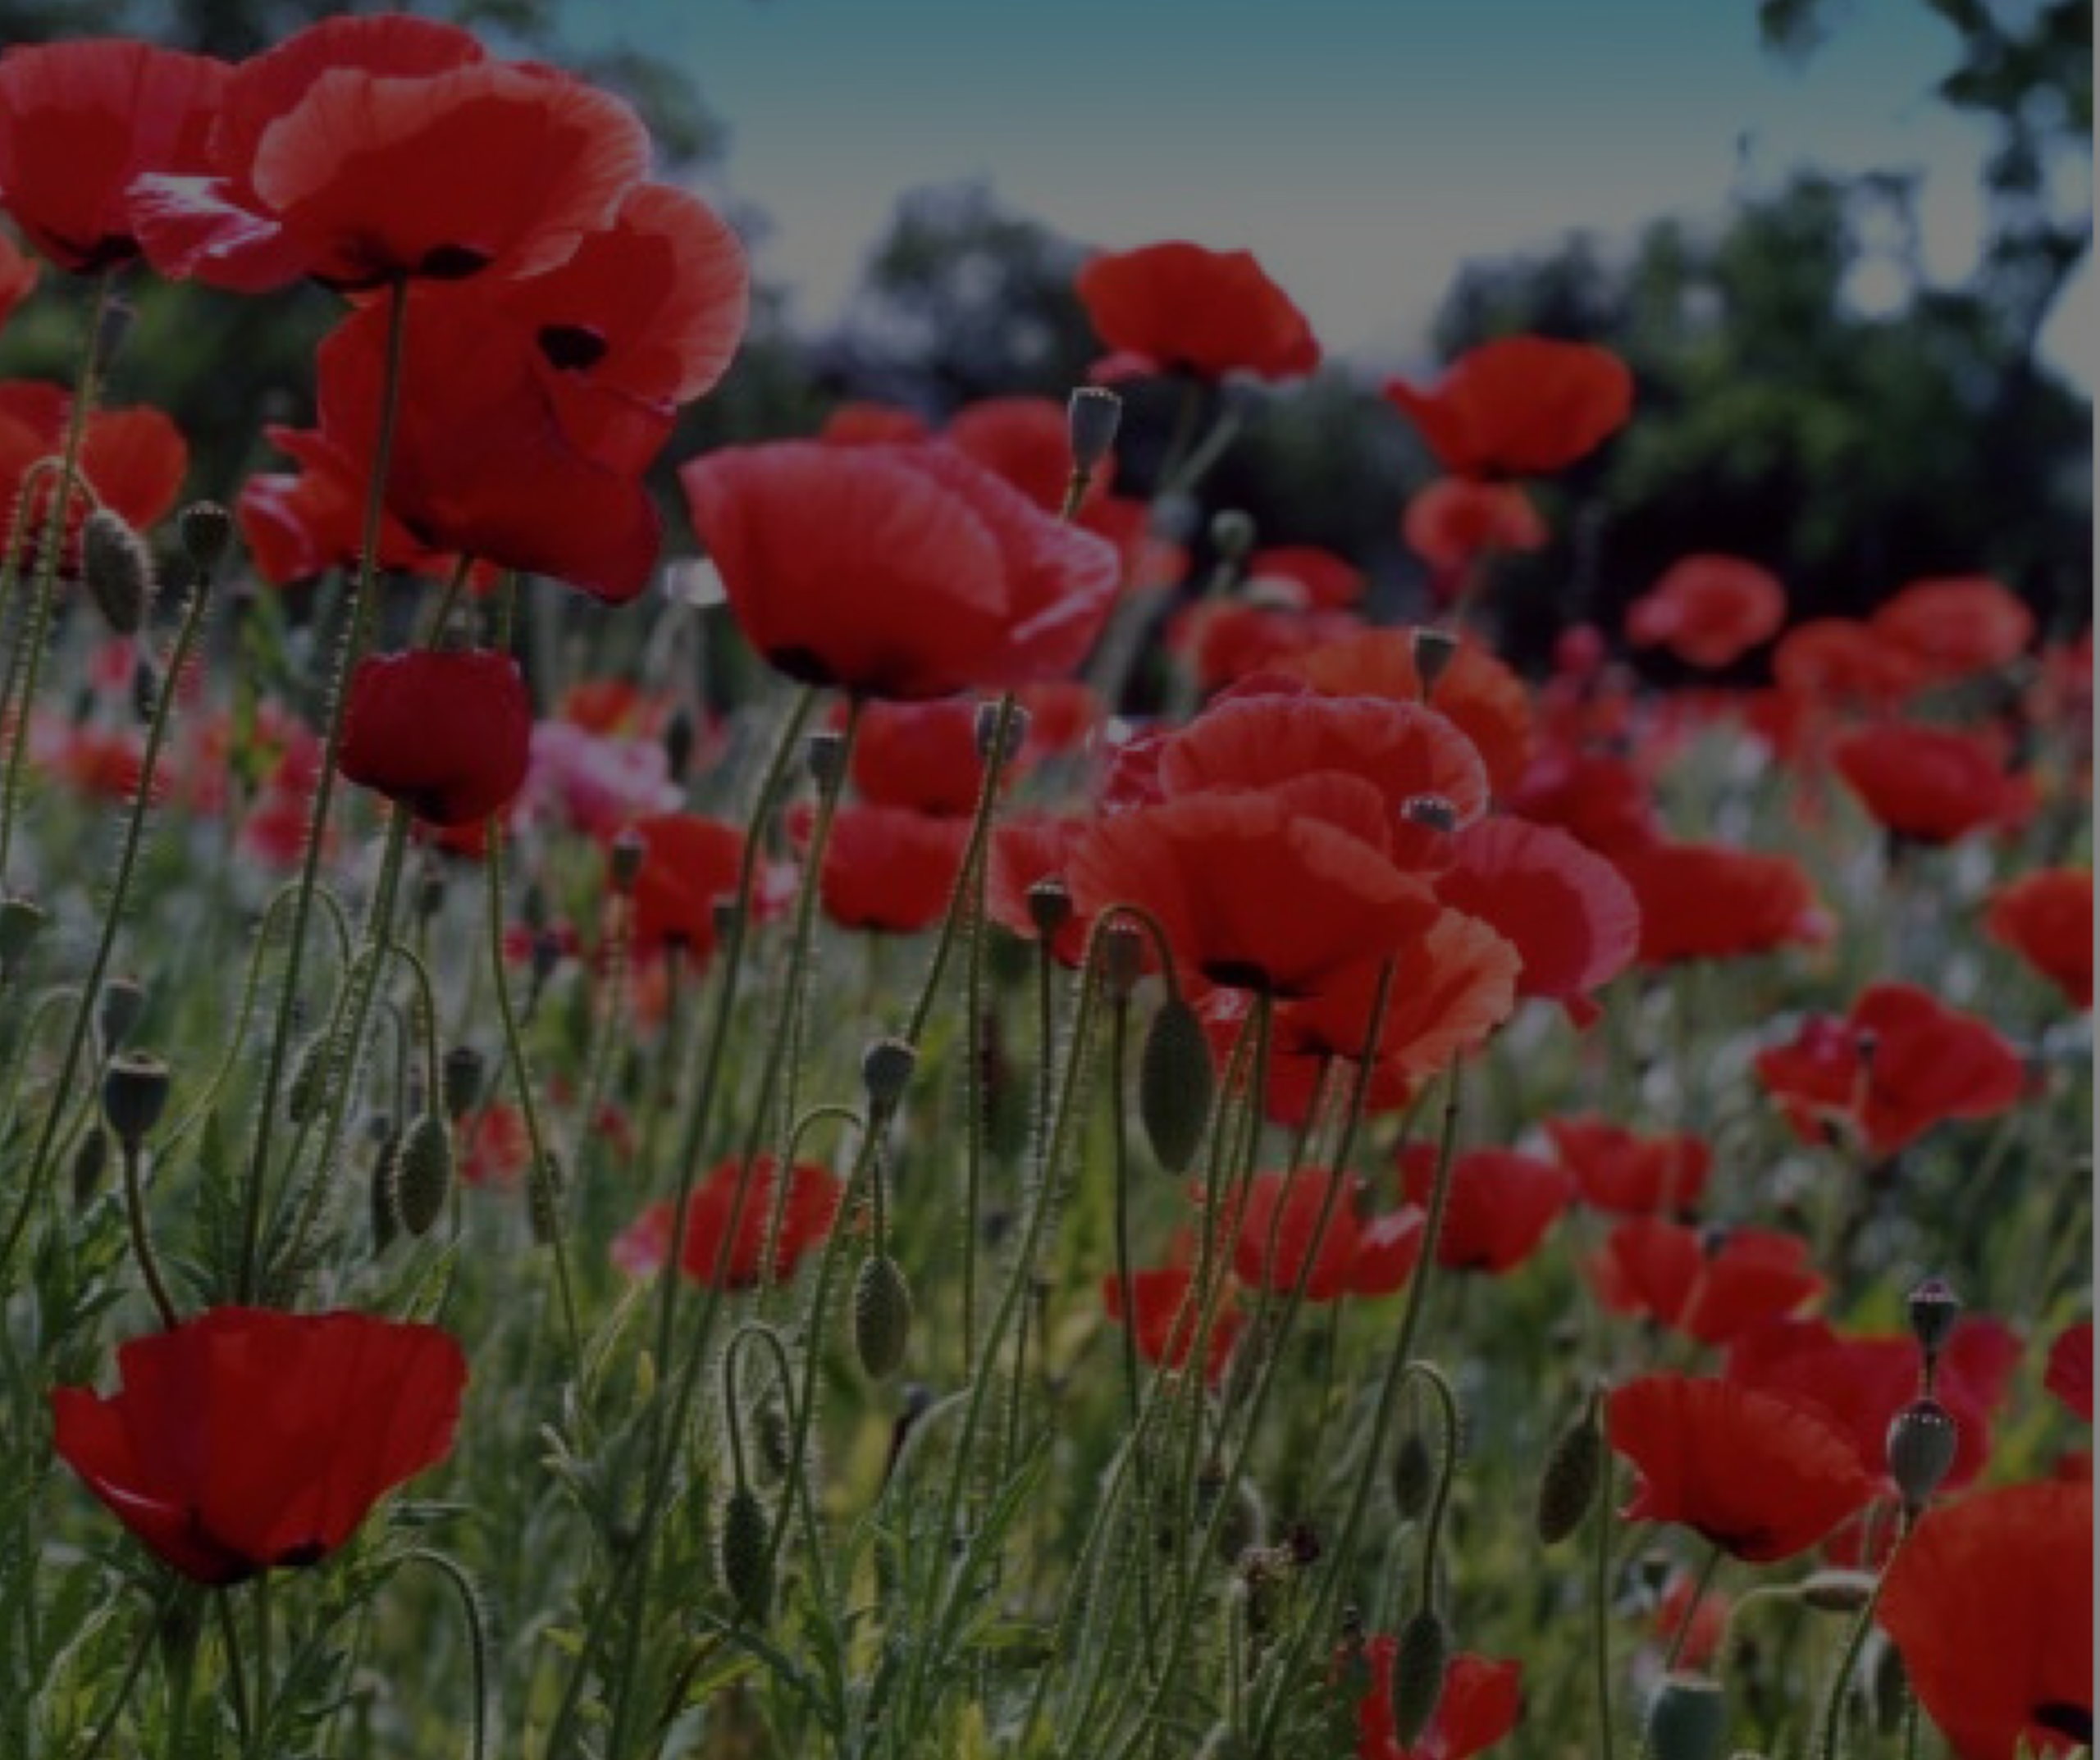 Georgetown, Tx - The Red Poppy Capital of Texas